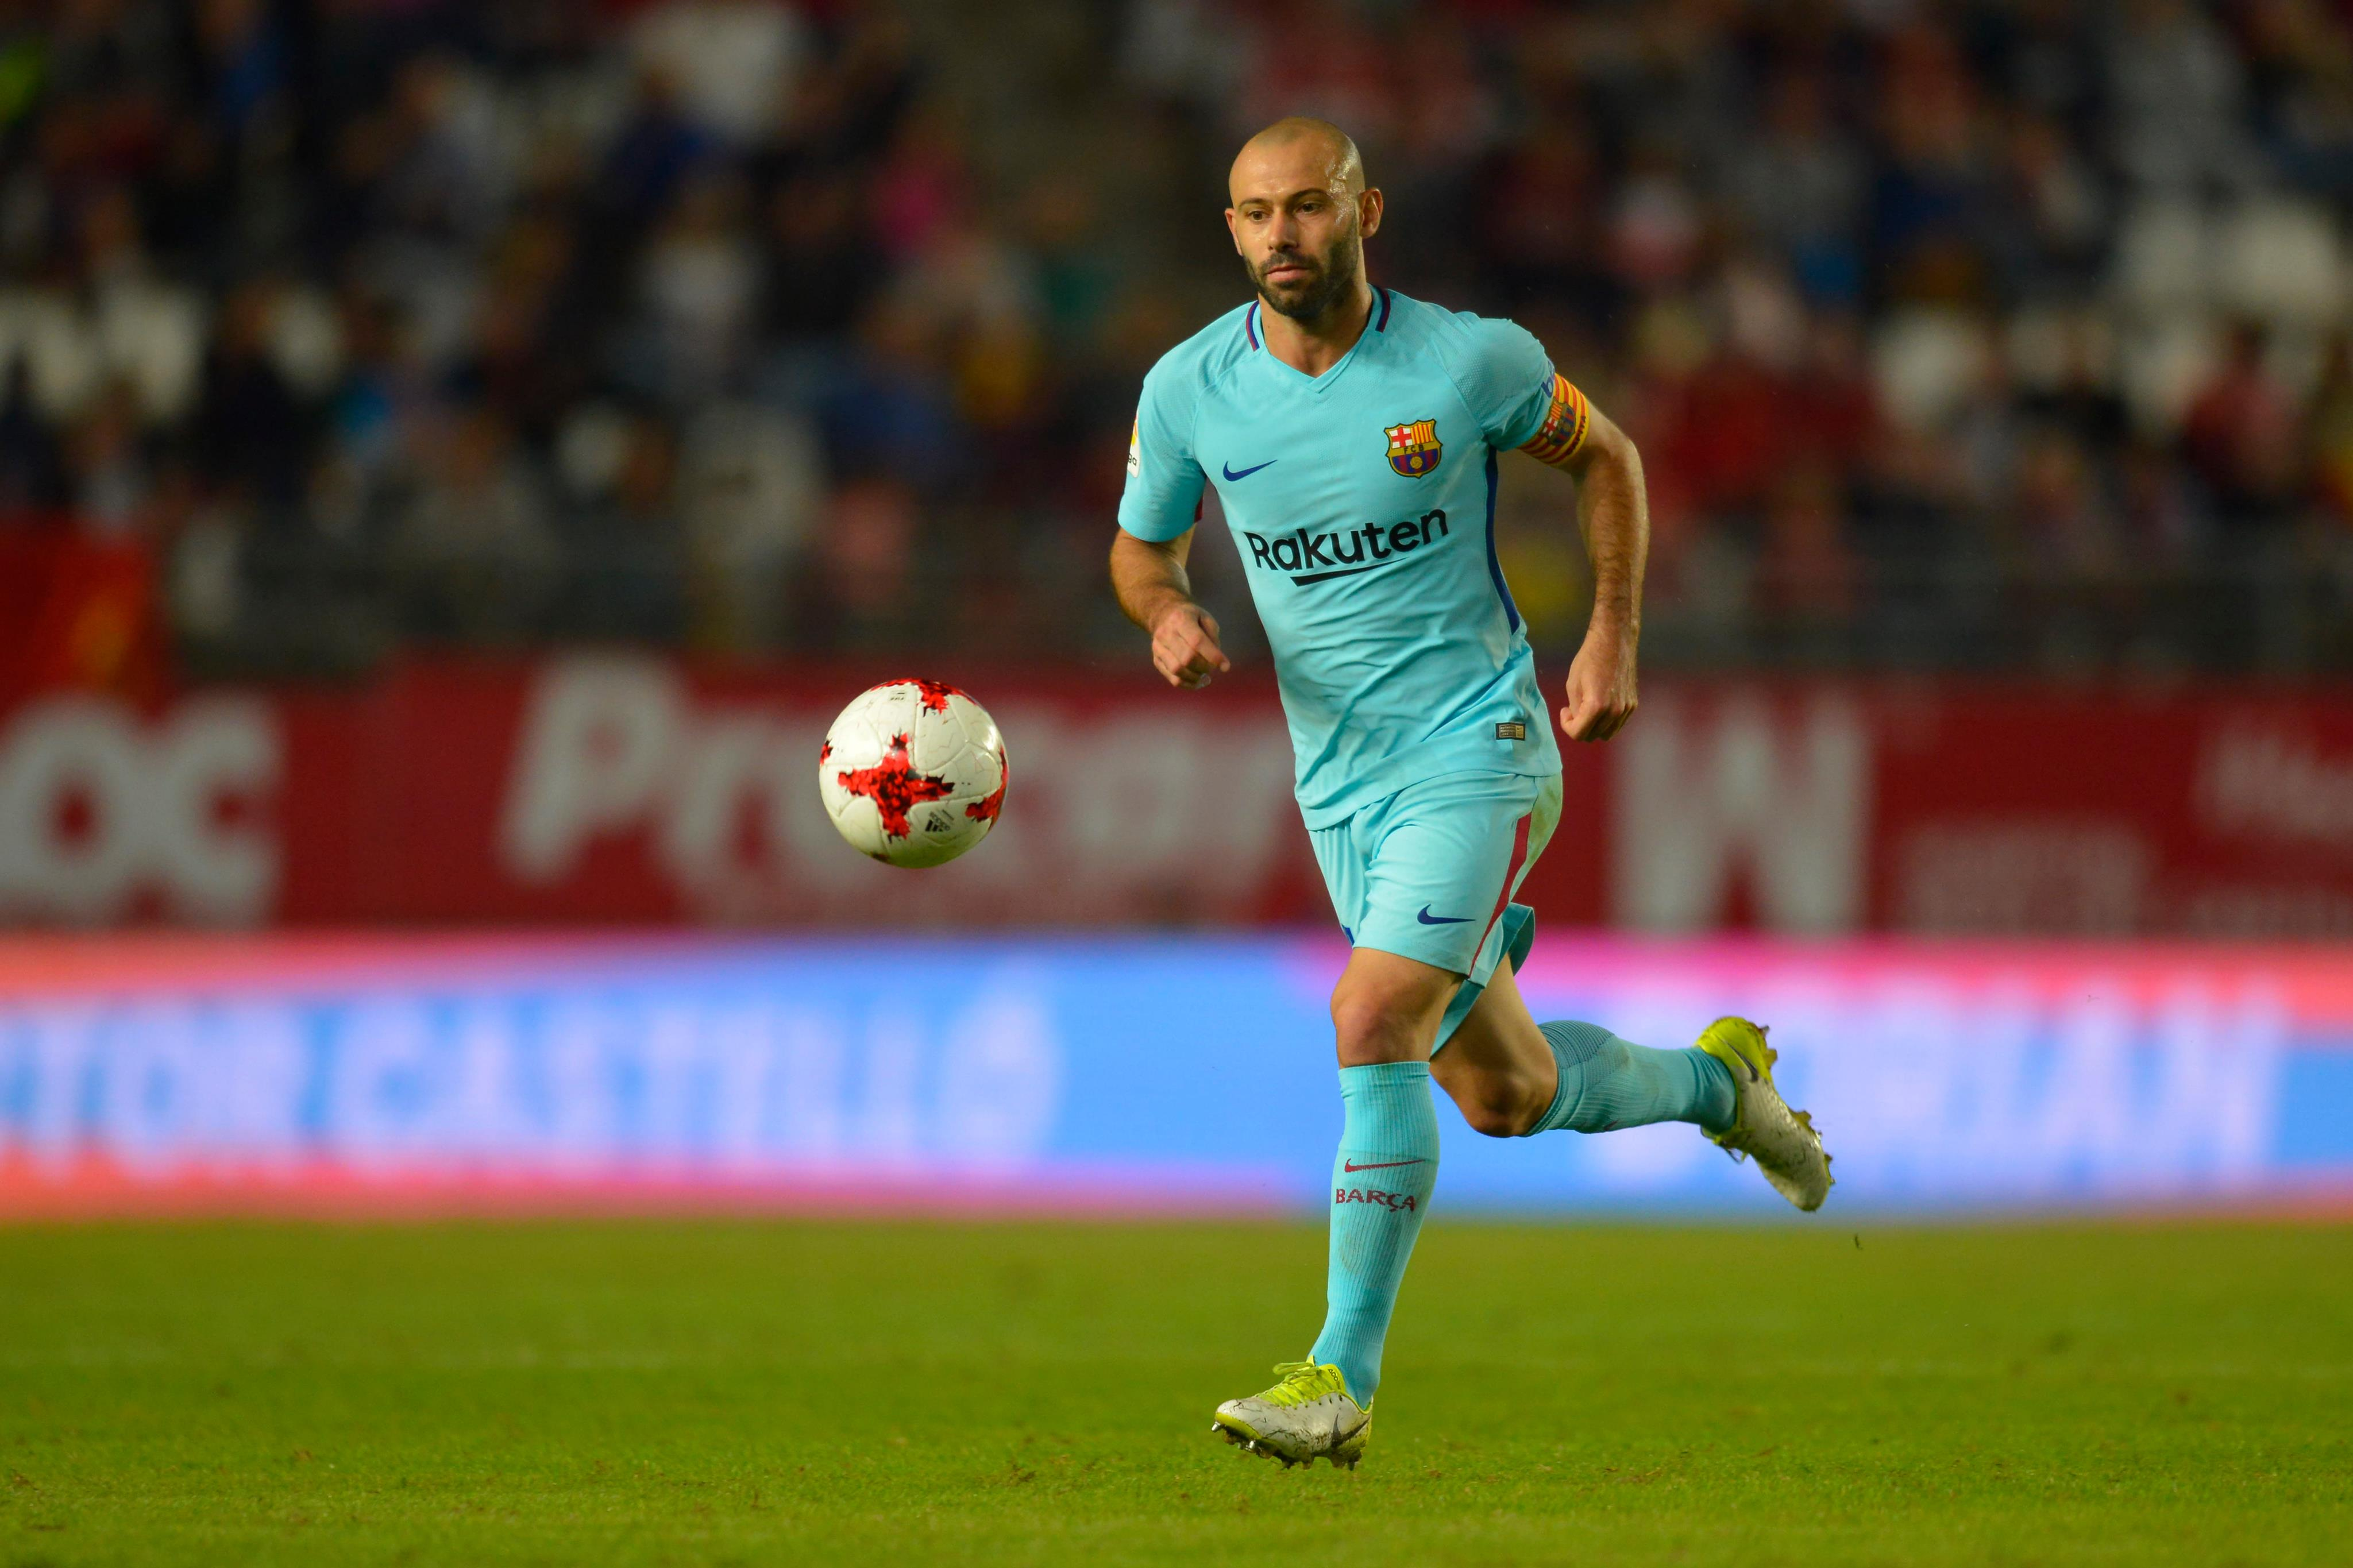 Barcelona star Javier Mascherano 'one step away' from lucrative China move